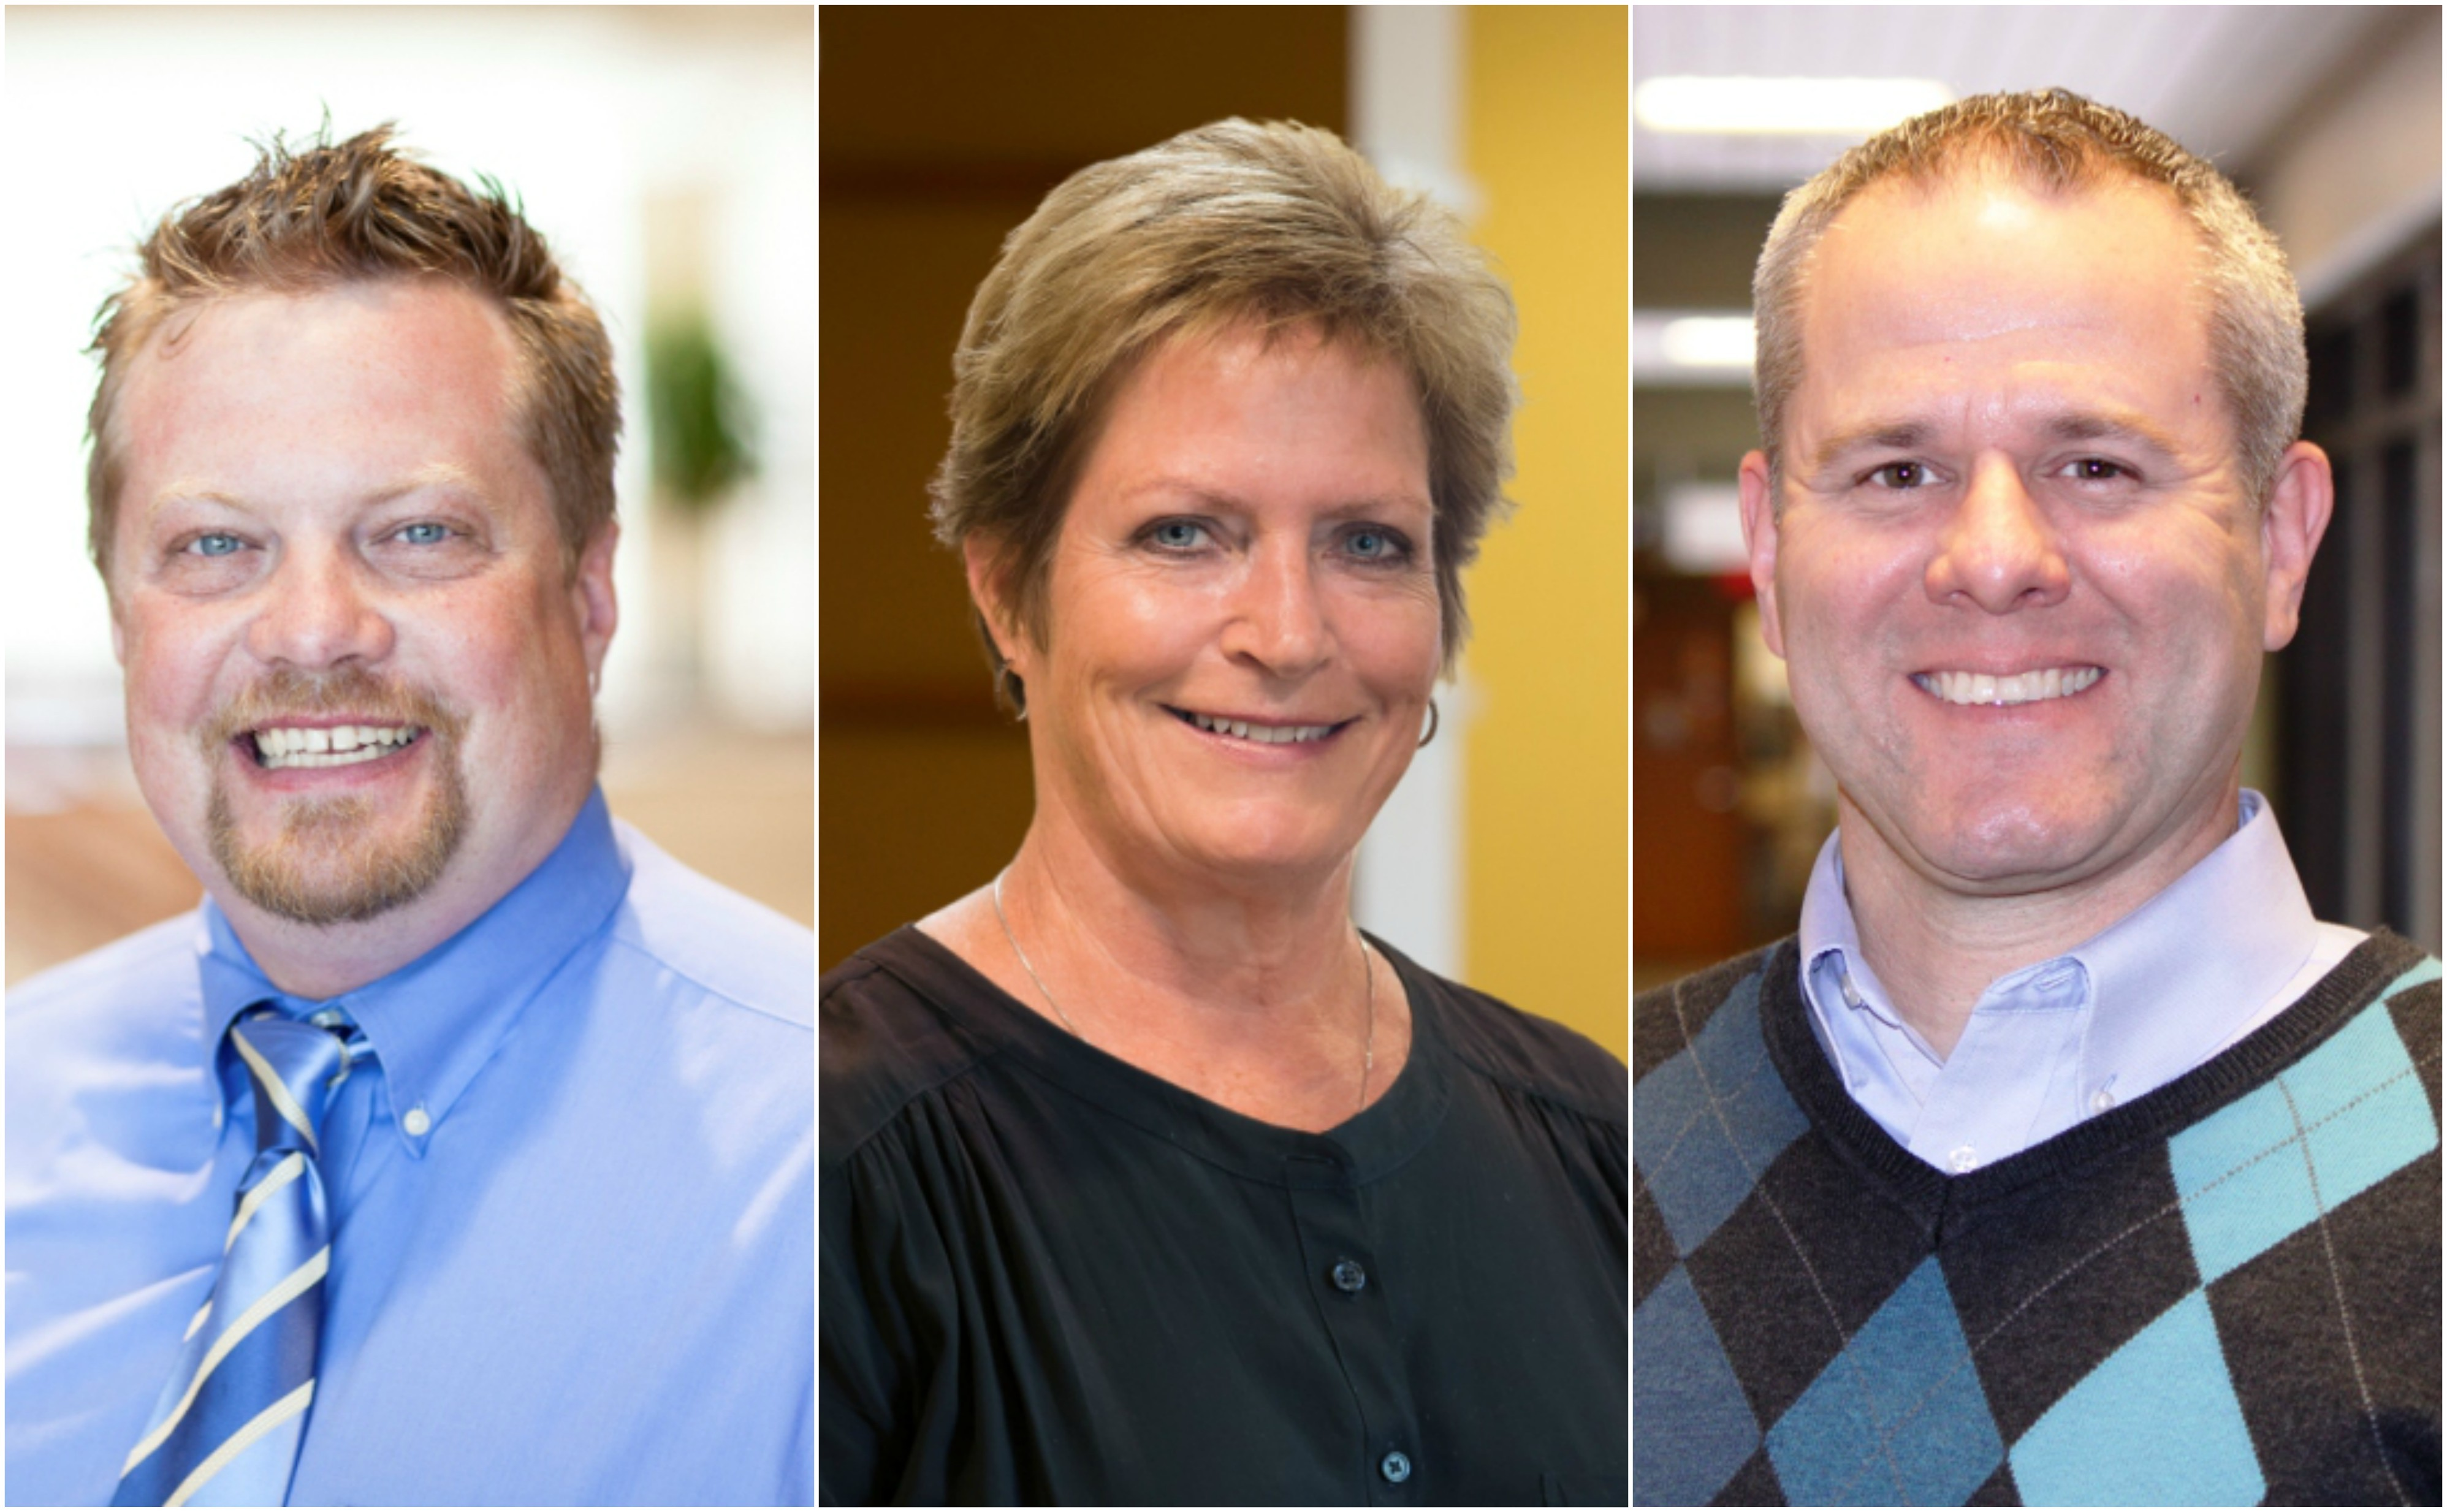 Drs. James Grimes and Cindy Leahy, along with family nurse practitioner Robert Schwenk are available for appointments.